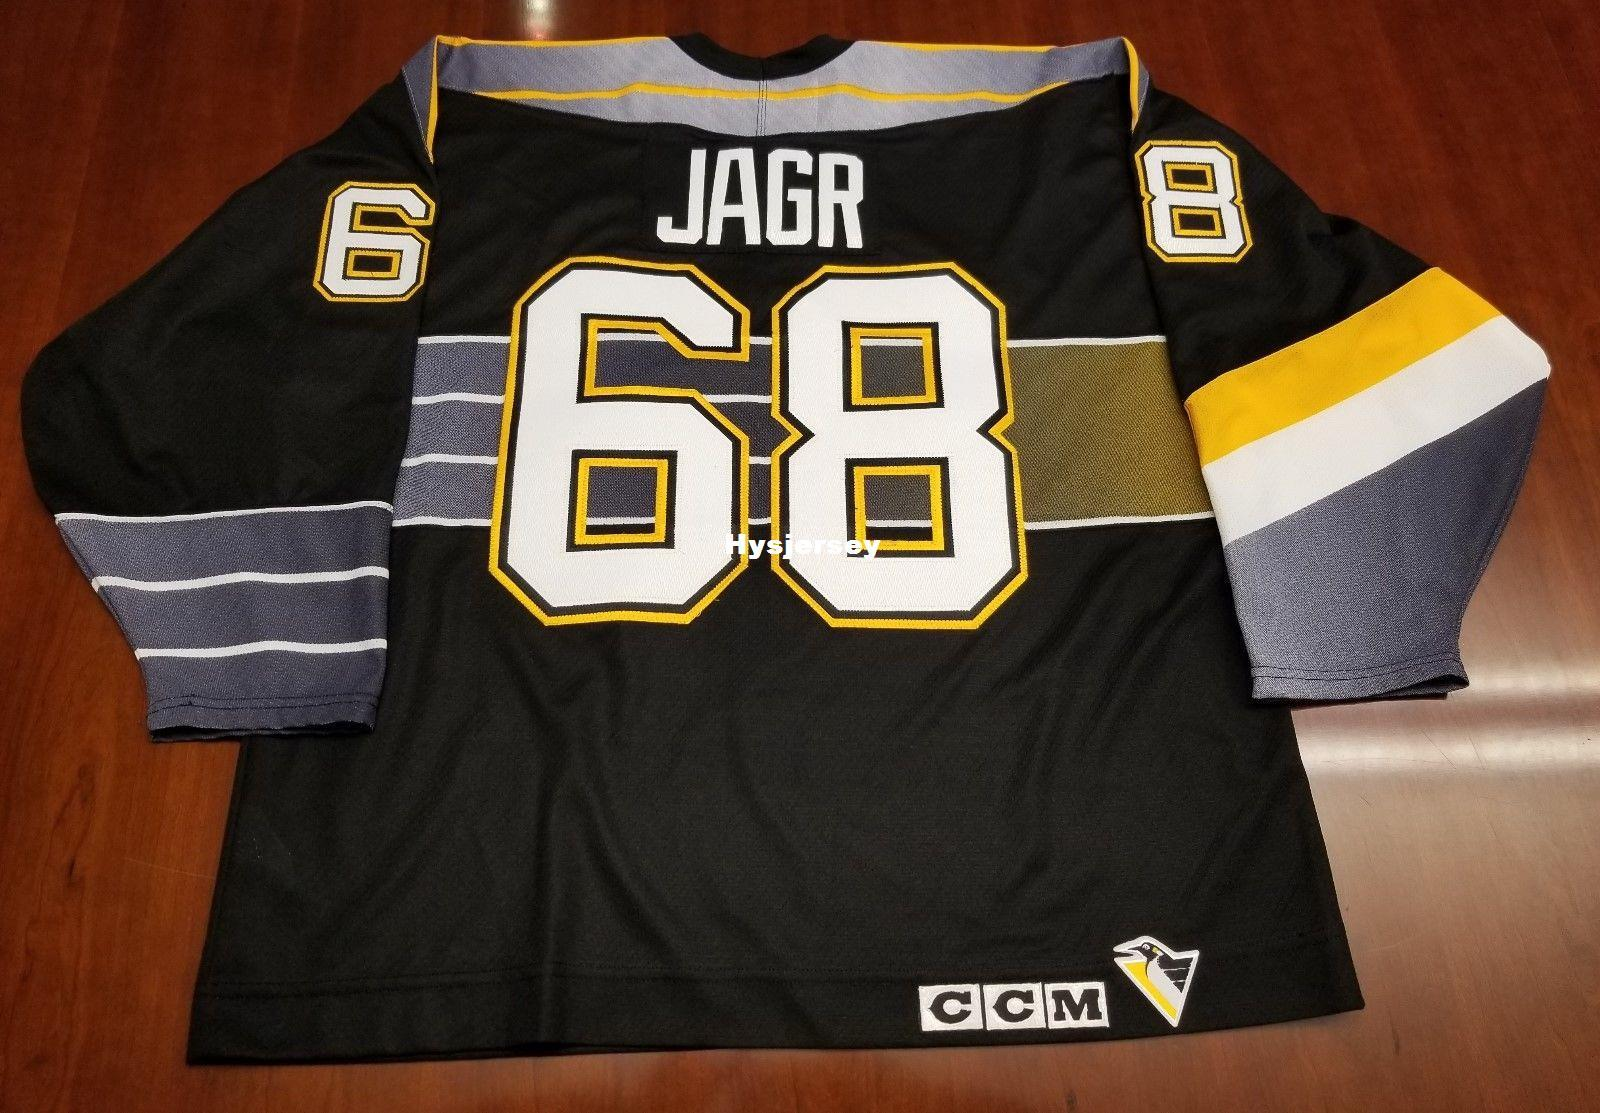 the best attitude 46507 321e1 2019 Cheap Jaromir Jagr Pittsburgh Penguins Vintage CCM Cheap Hockey Jersey  Black Robo Pen Mens Retro Jerseys From Hysjersey, $24.53 | DHgate.Com